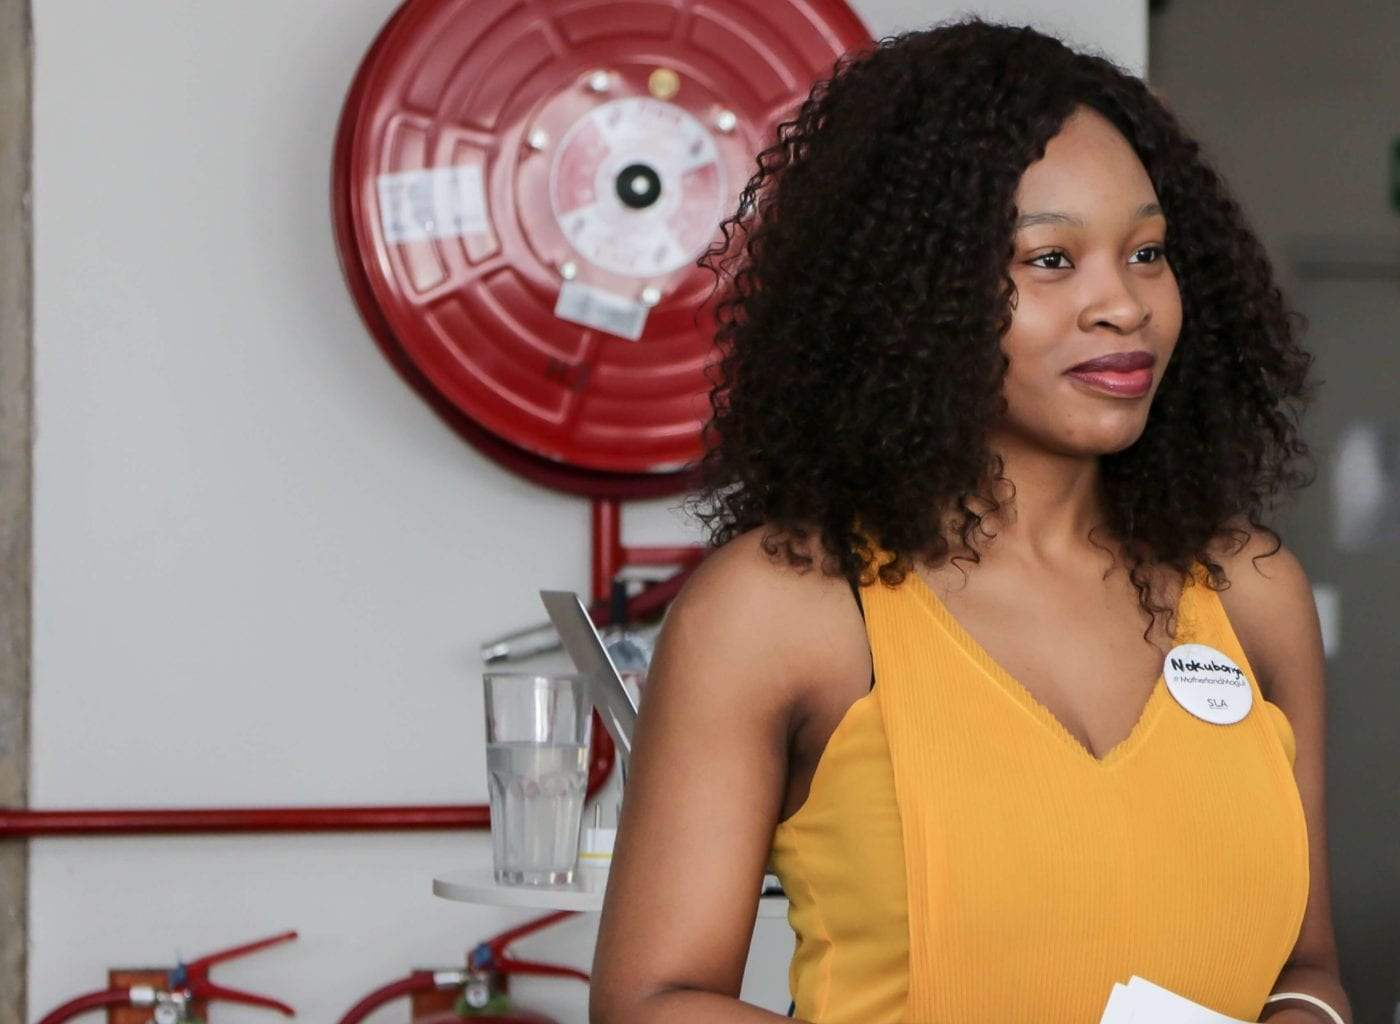 shehive joburg she leads africa competition